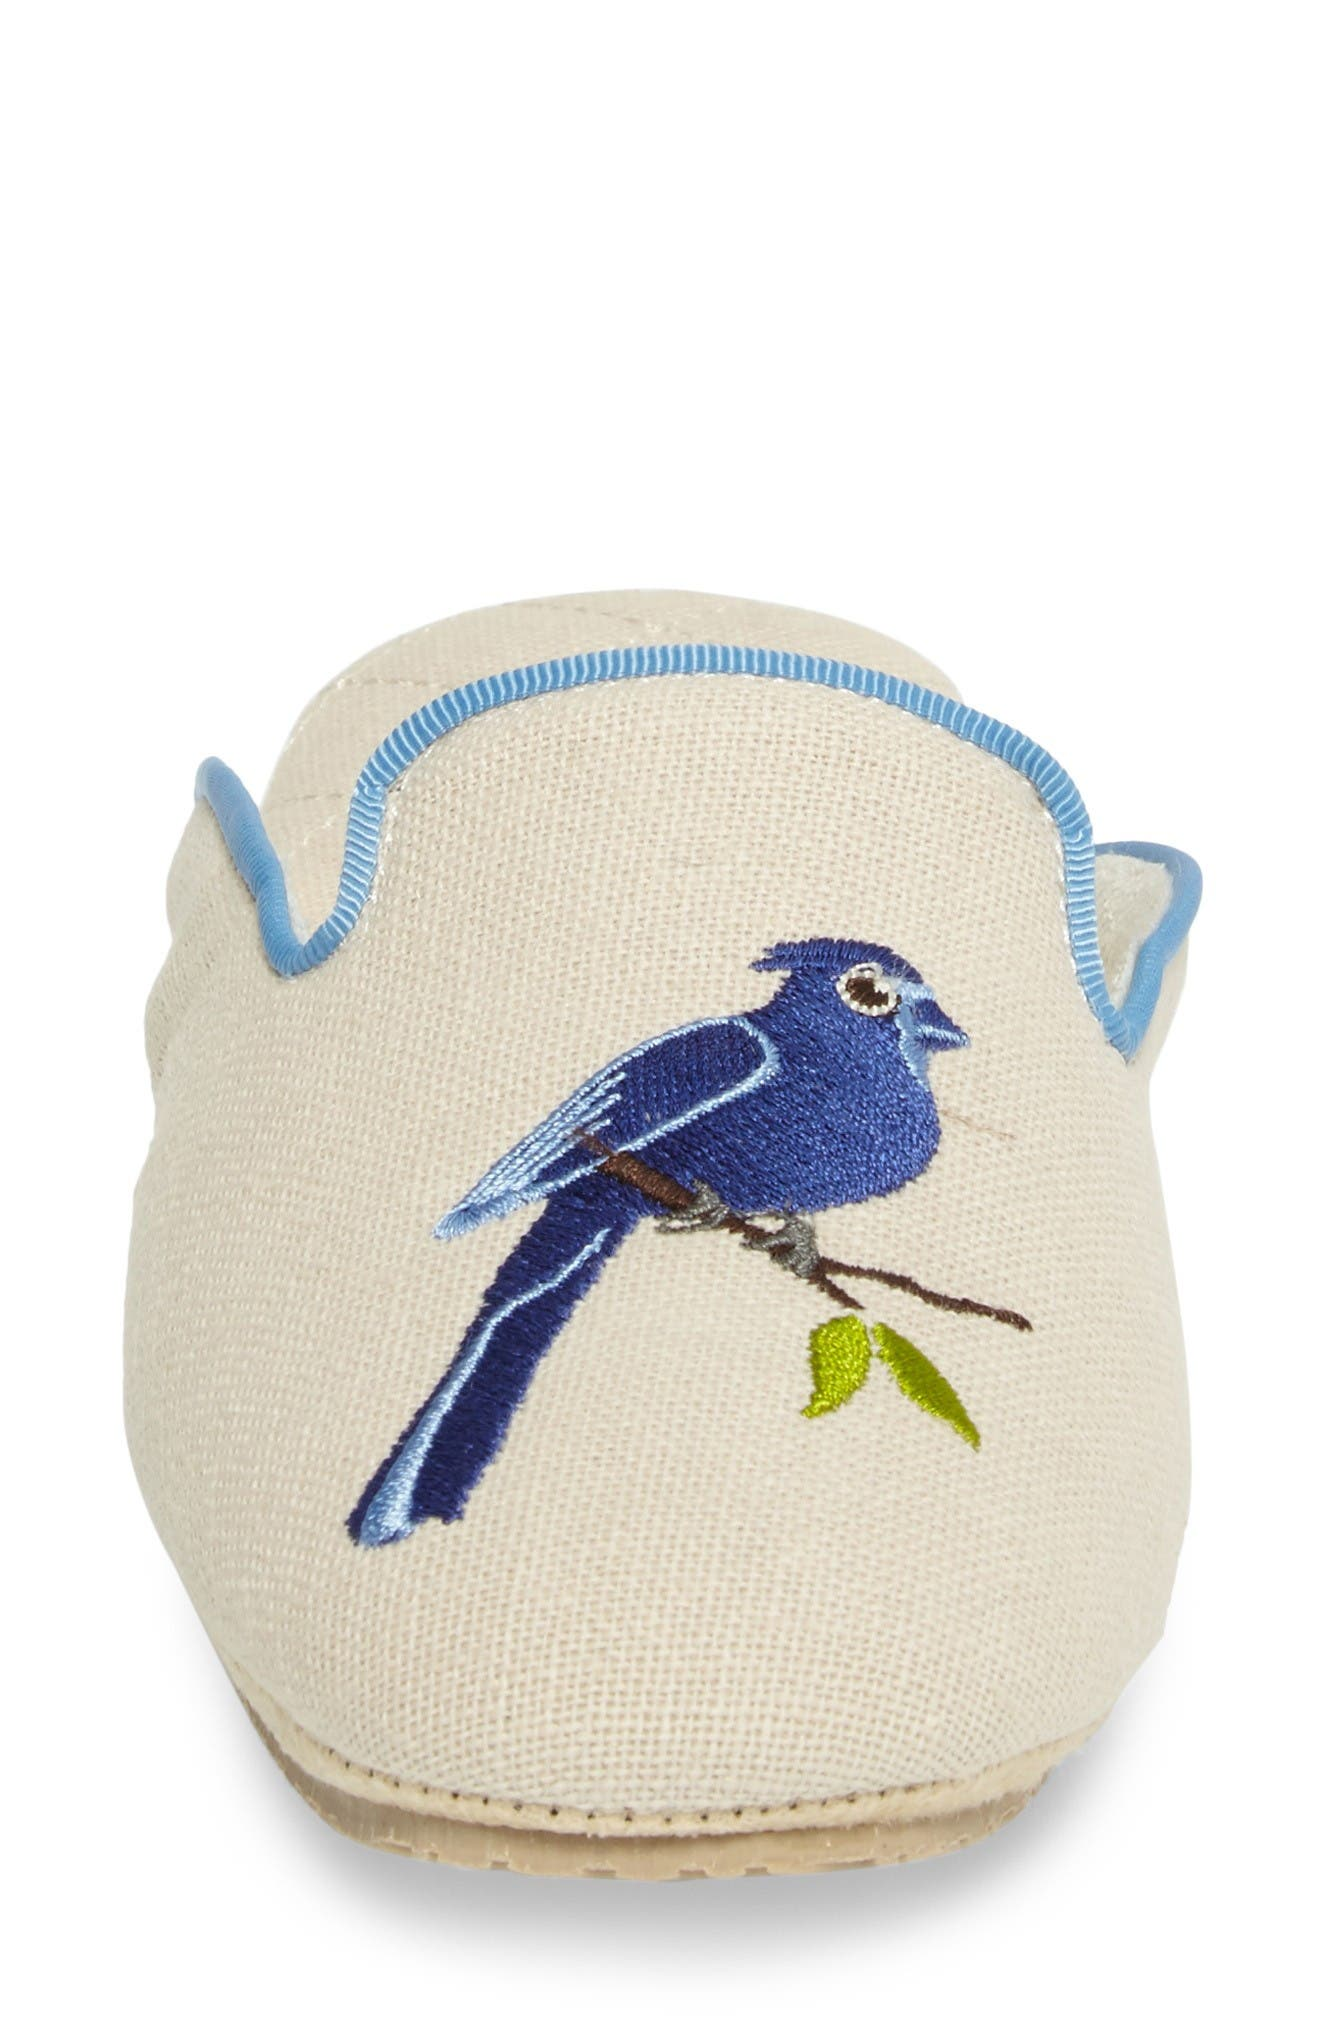 Bluebird Embroidered Slipper,                             Alternate thumbnail 4, color,                             Natural Fabric